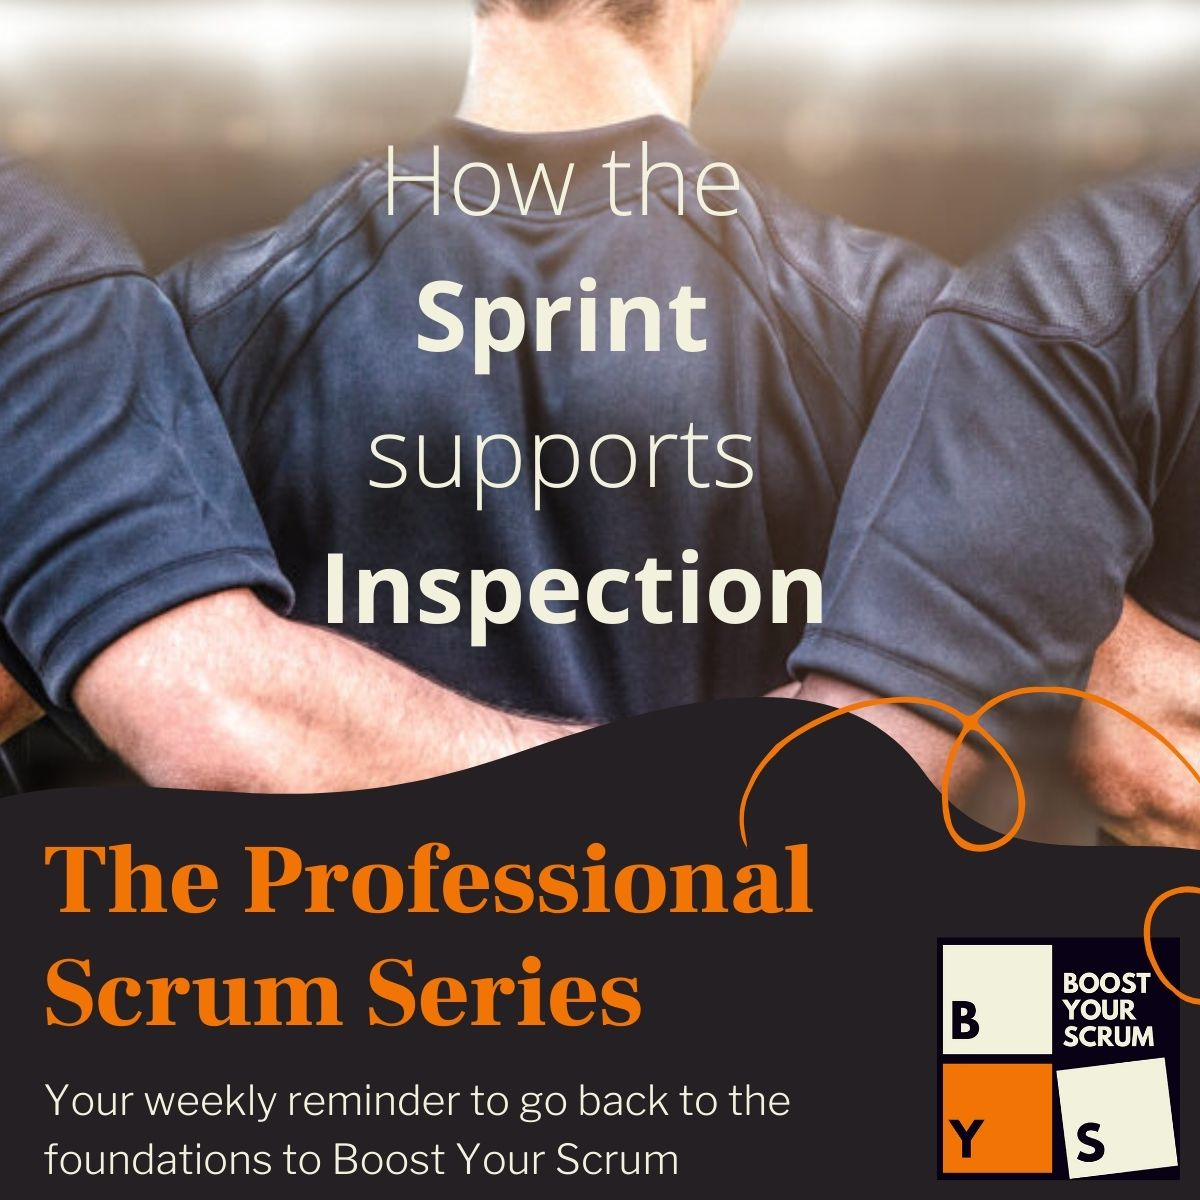 How the Sprint supports Inspection